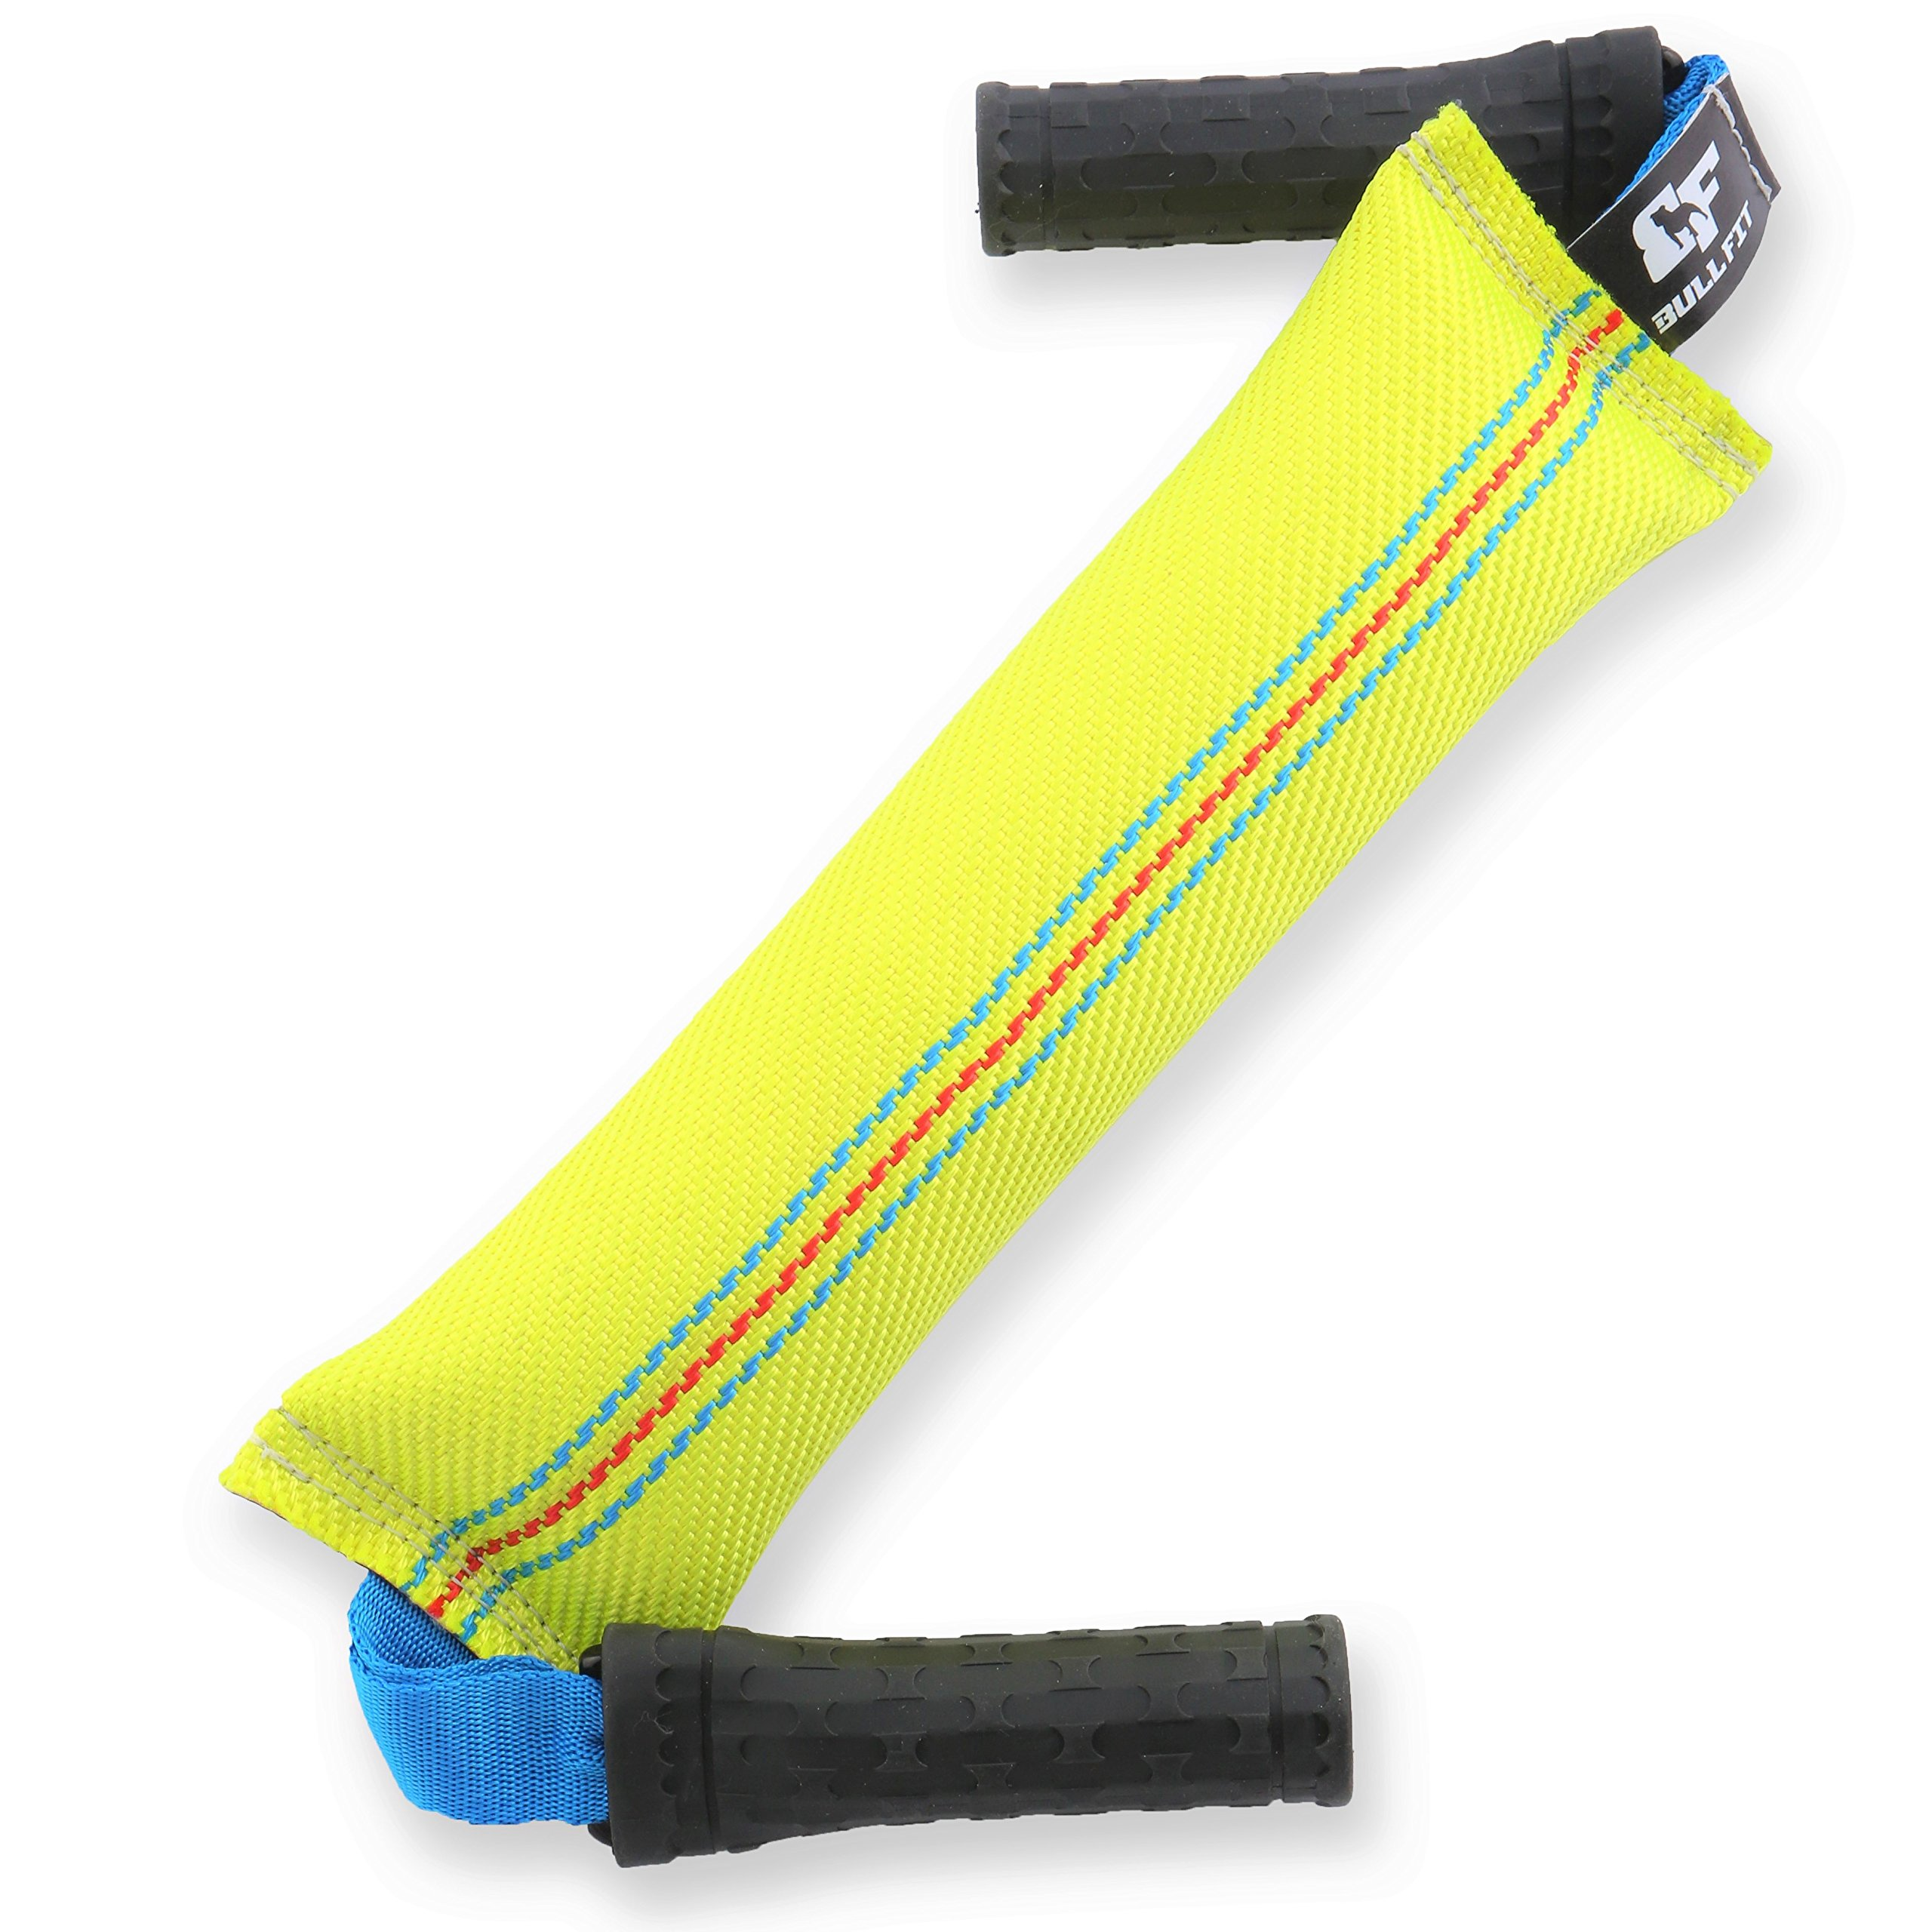 Unique Dog Bite Tug Toy with 2 Handles - Best for Tug of War & Workout with Your Dog! - Extra Tough, Durable Fire Hose Dog Tug for Medium to Large Dogs - Ideal for Interactive Play & Outdoor Training